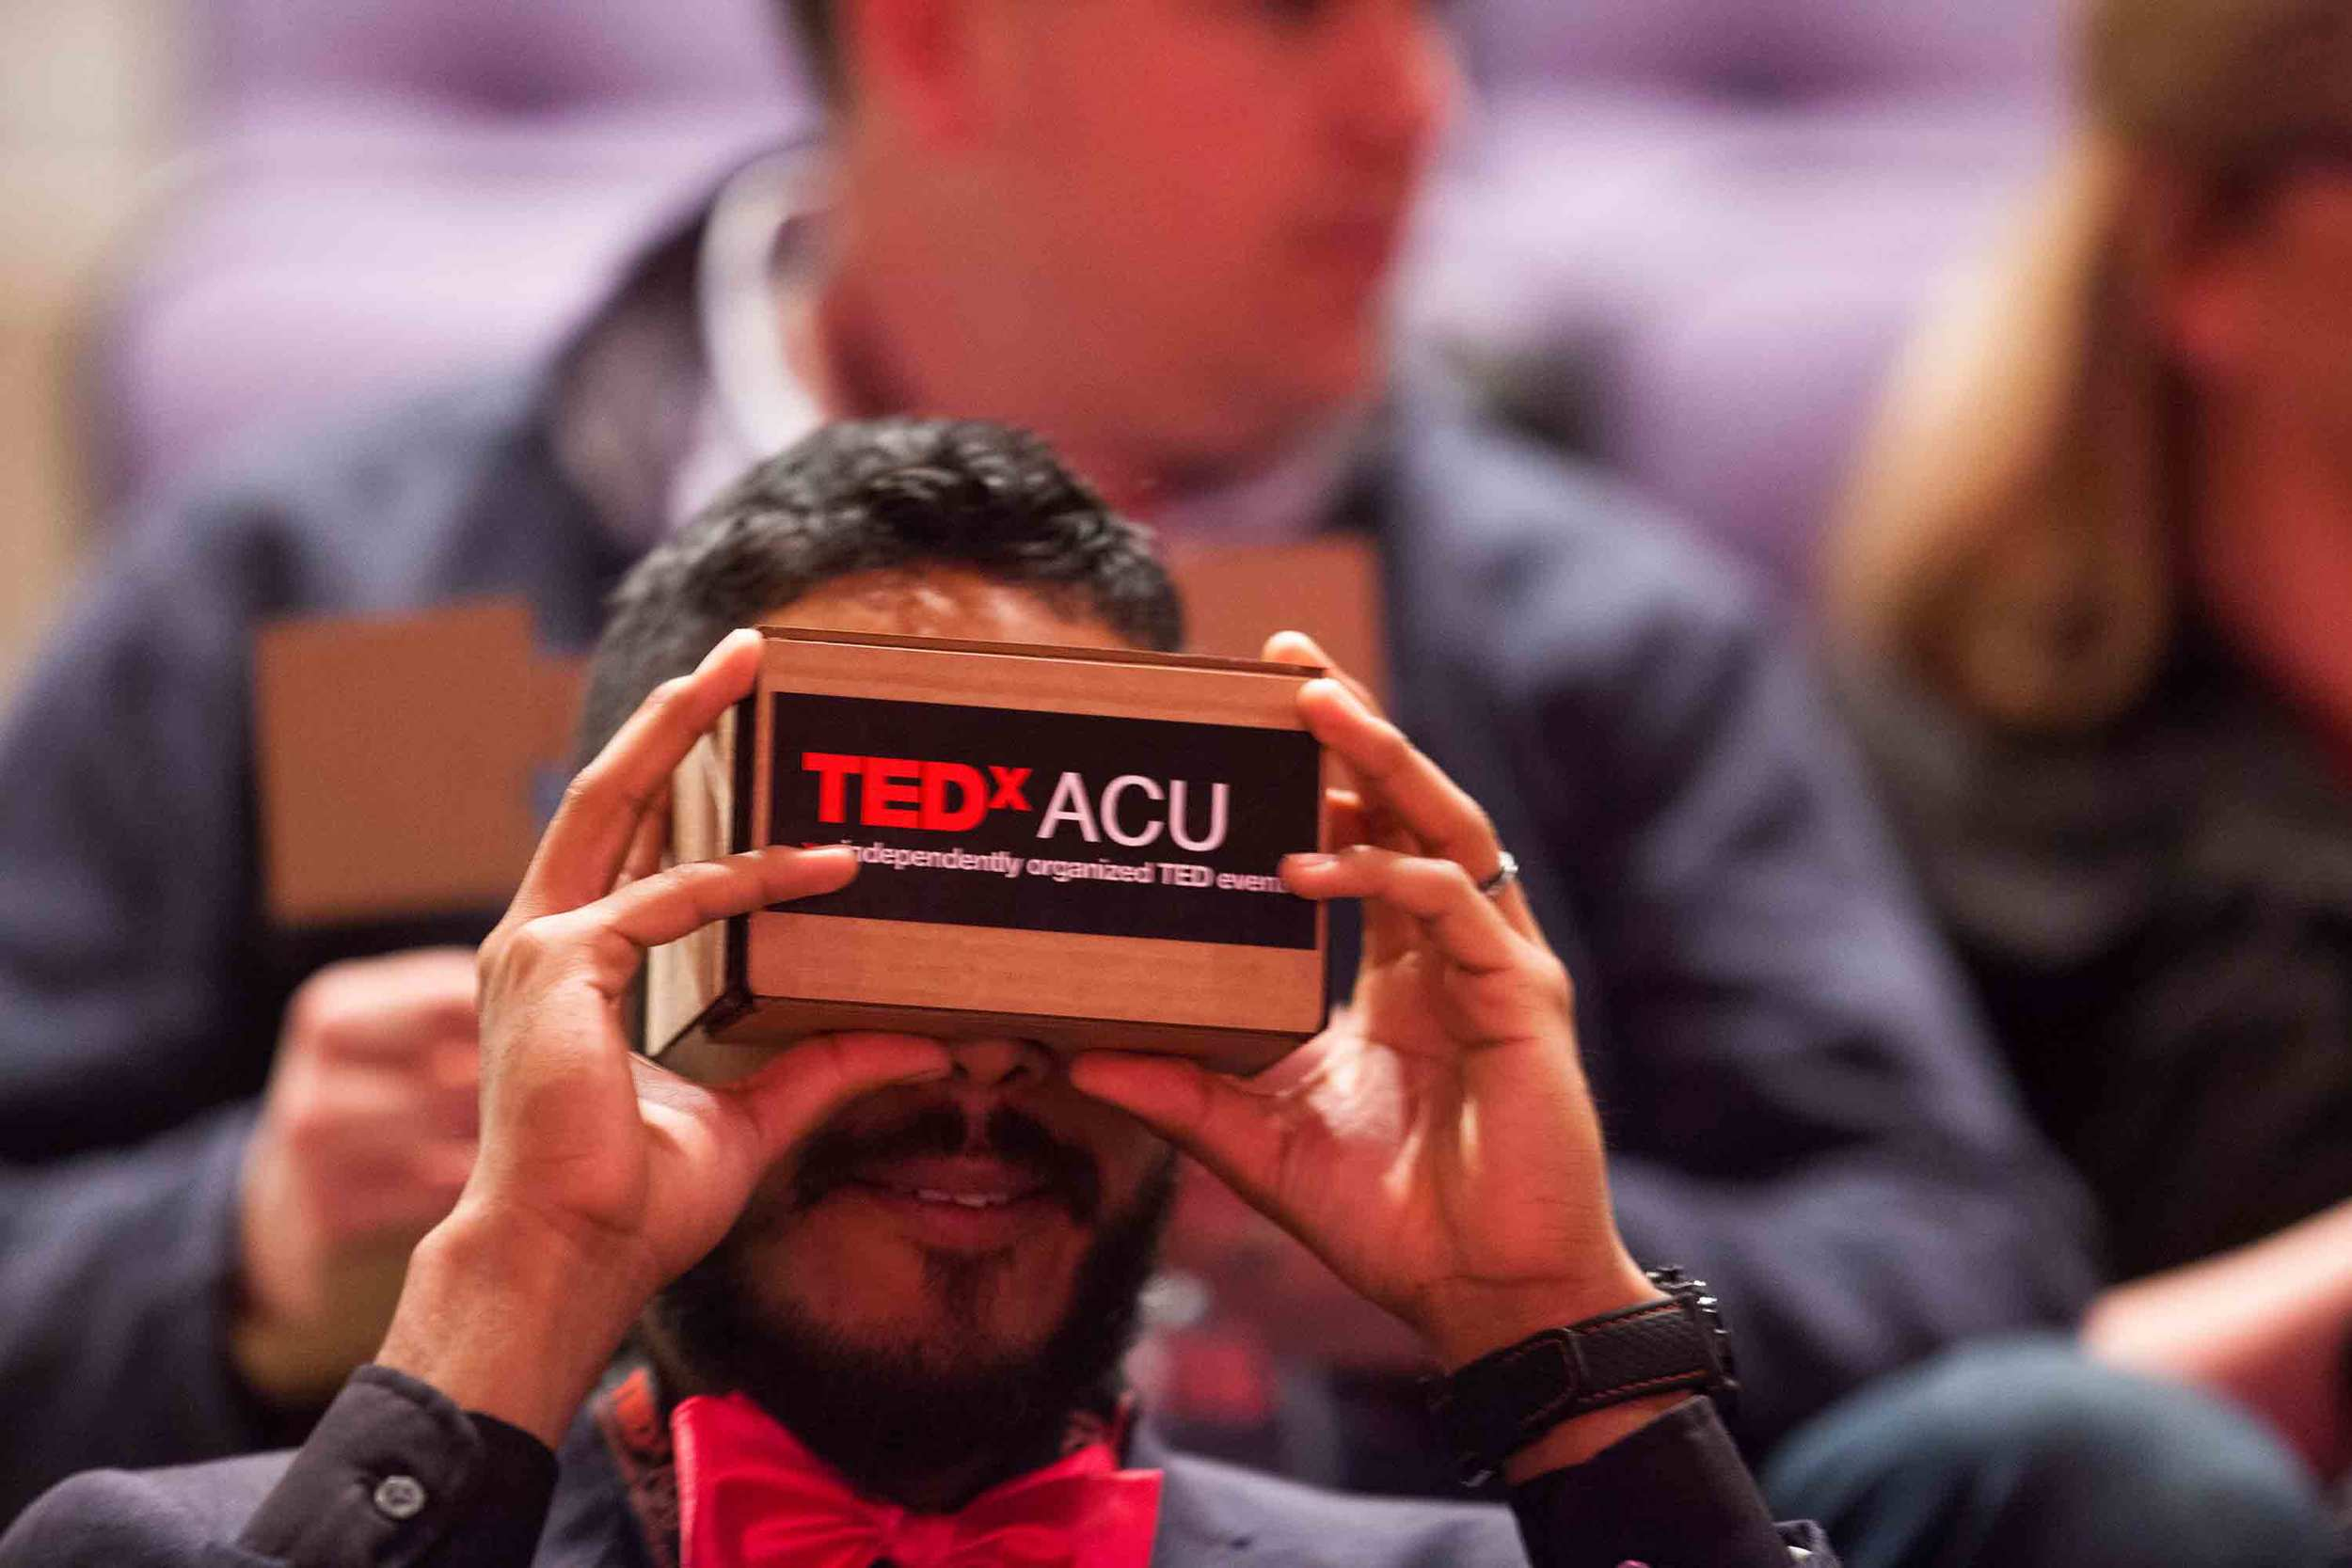 tedxacu-speaker-saul-delgado-trying-out-his-google-cardboard-viewer_26123234030_o.jpg